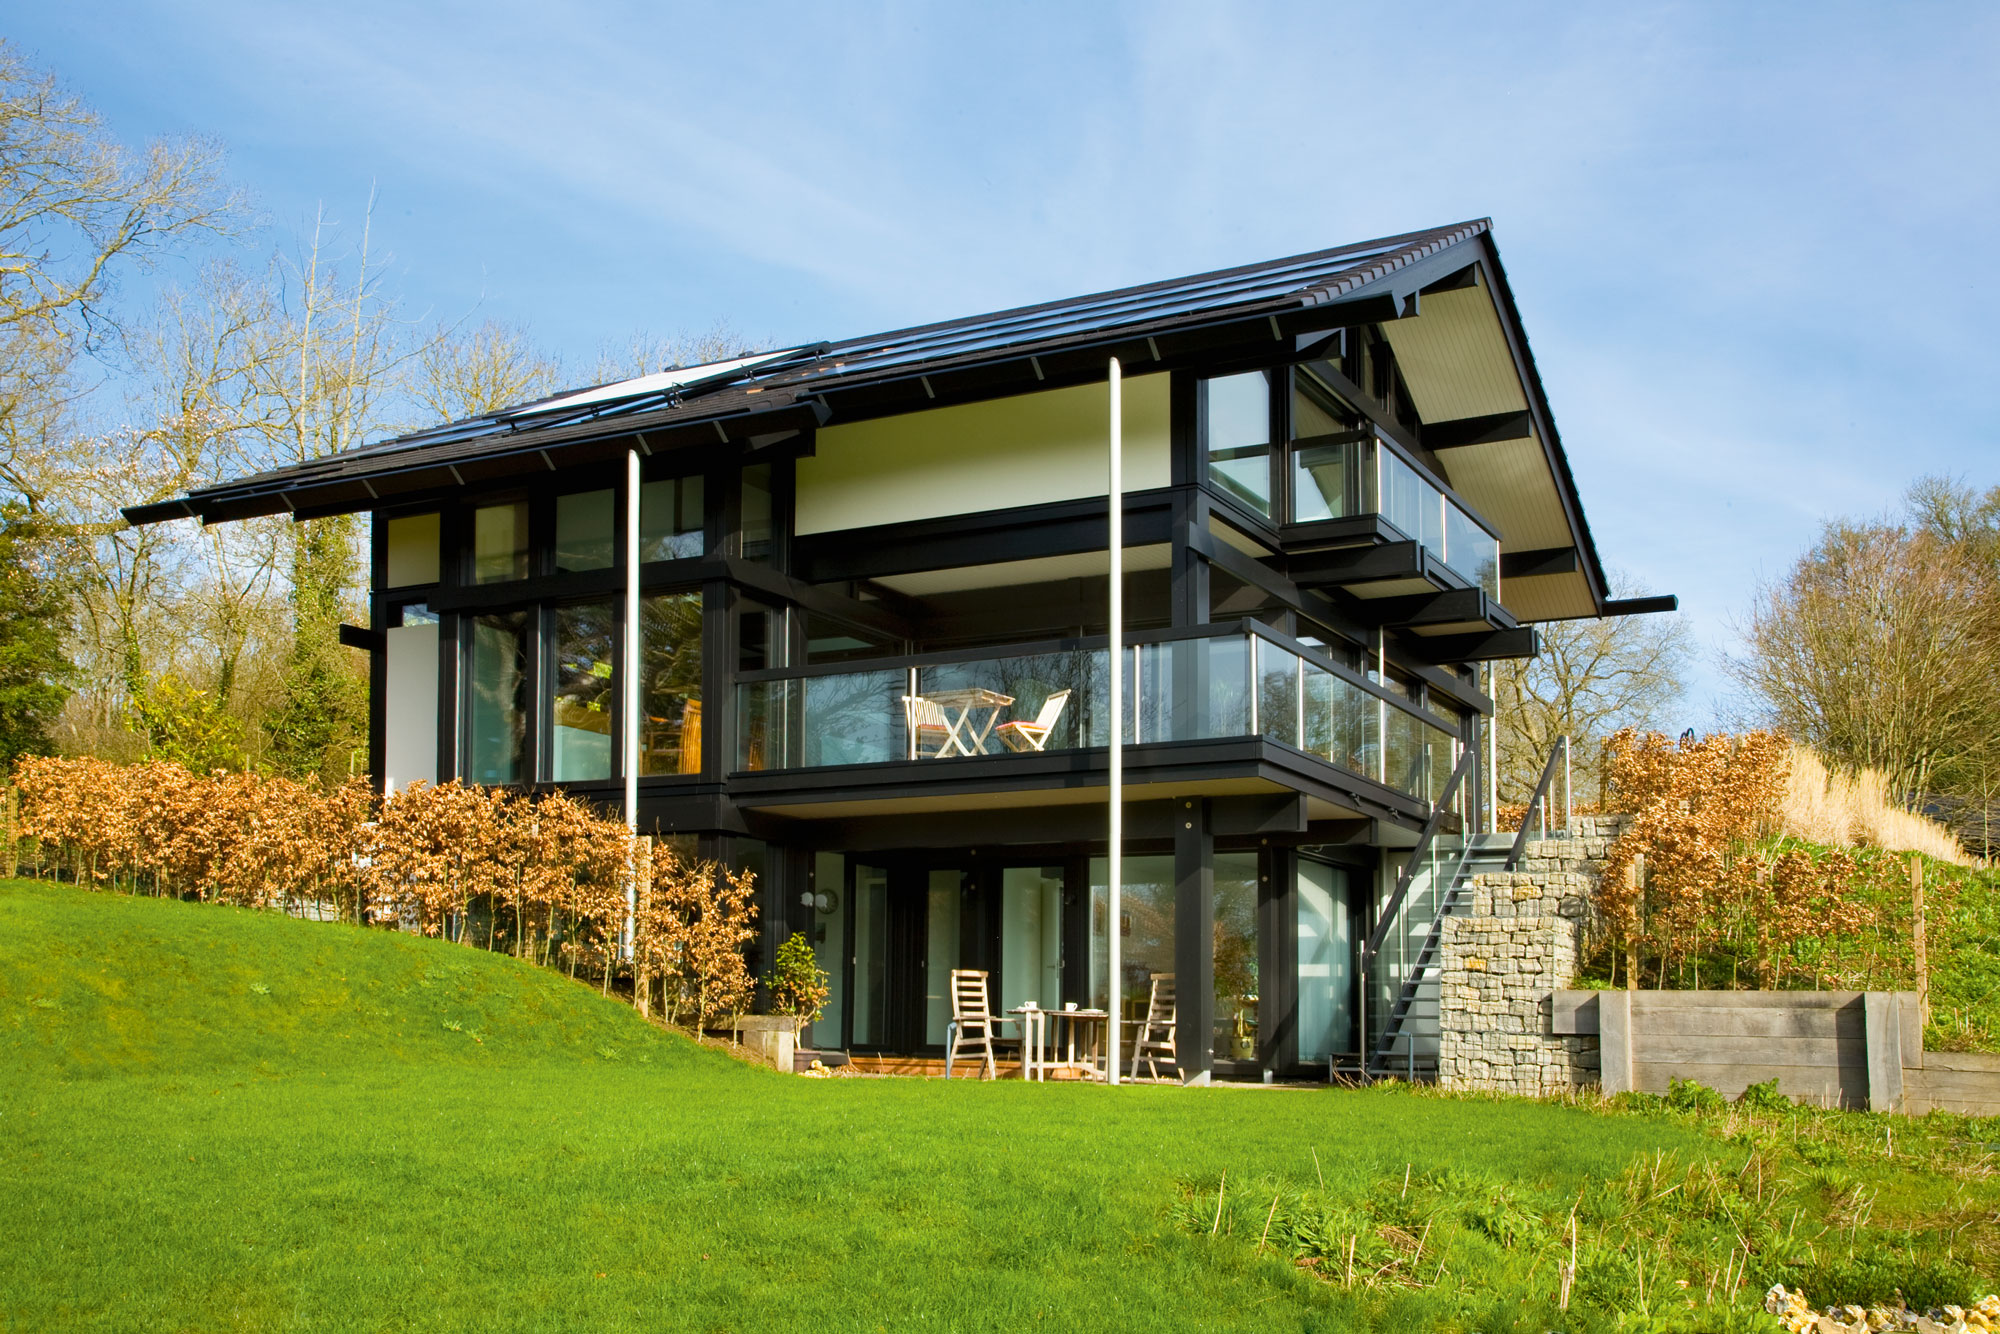 Triple glazing windows and 10kW solar electric panels mean the property is has zero utility bills